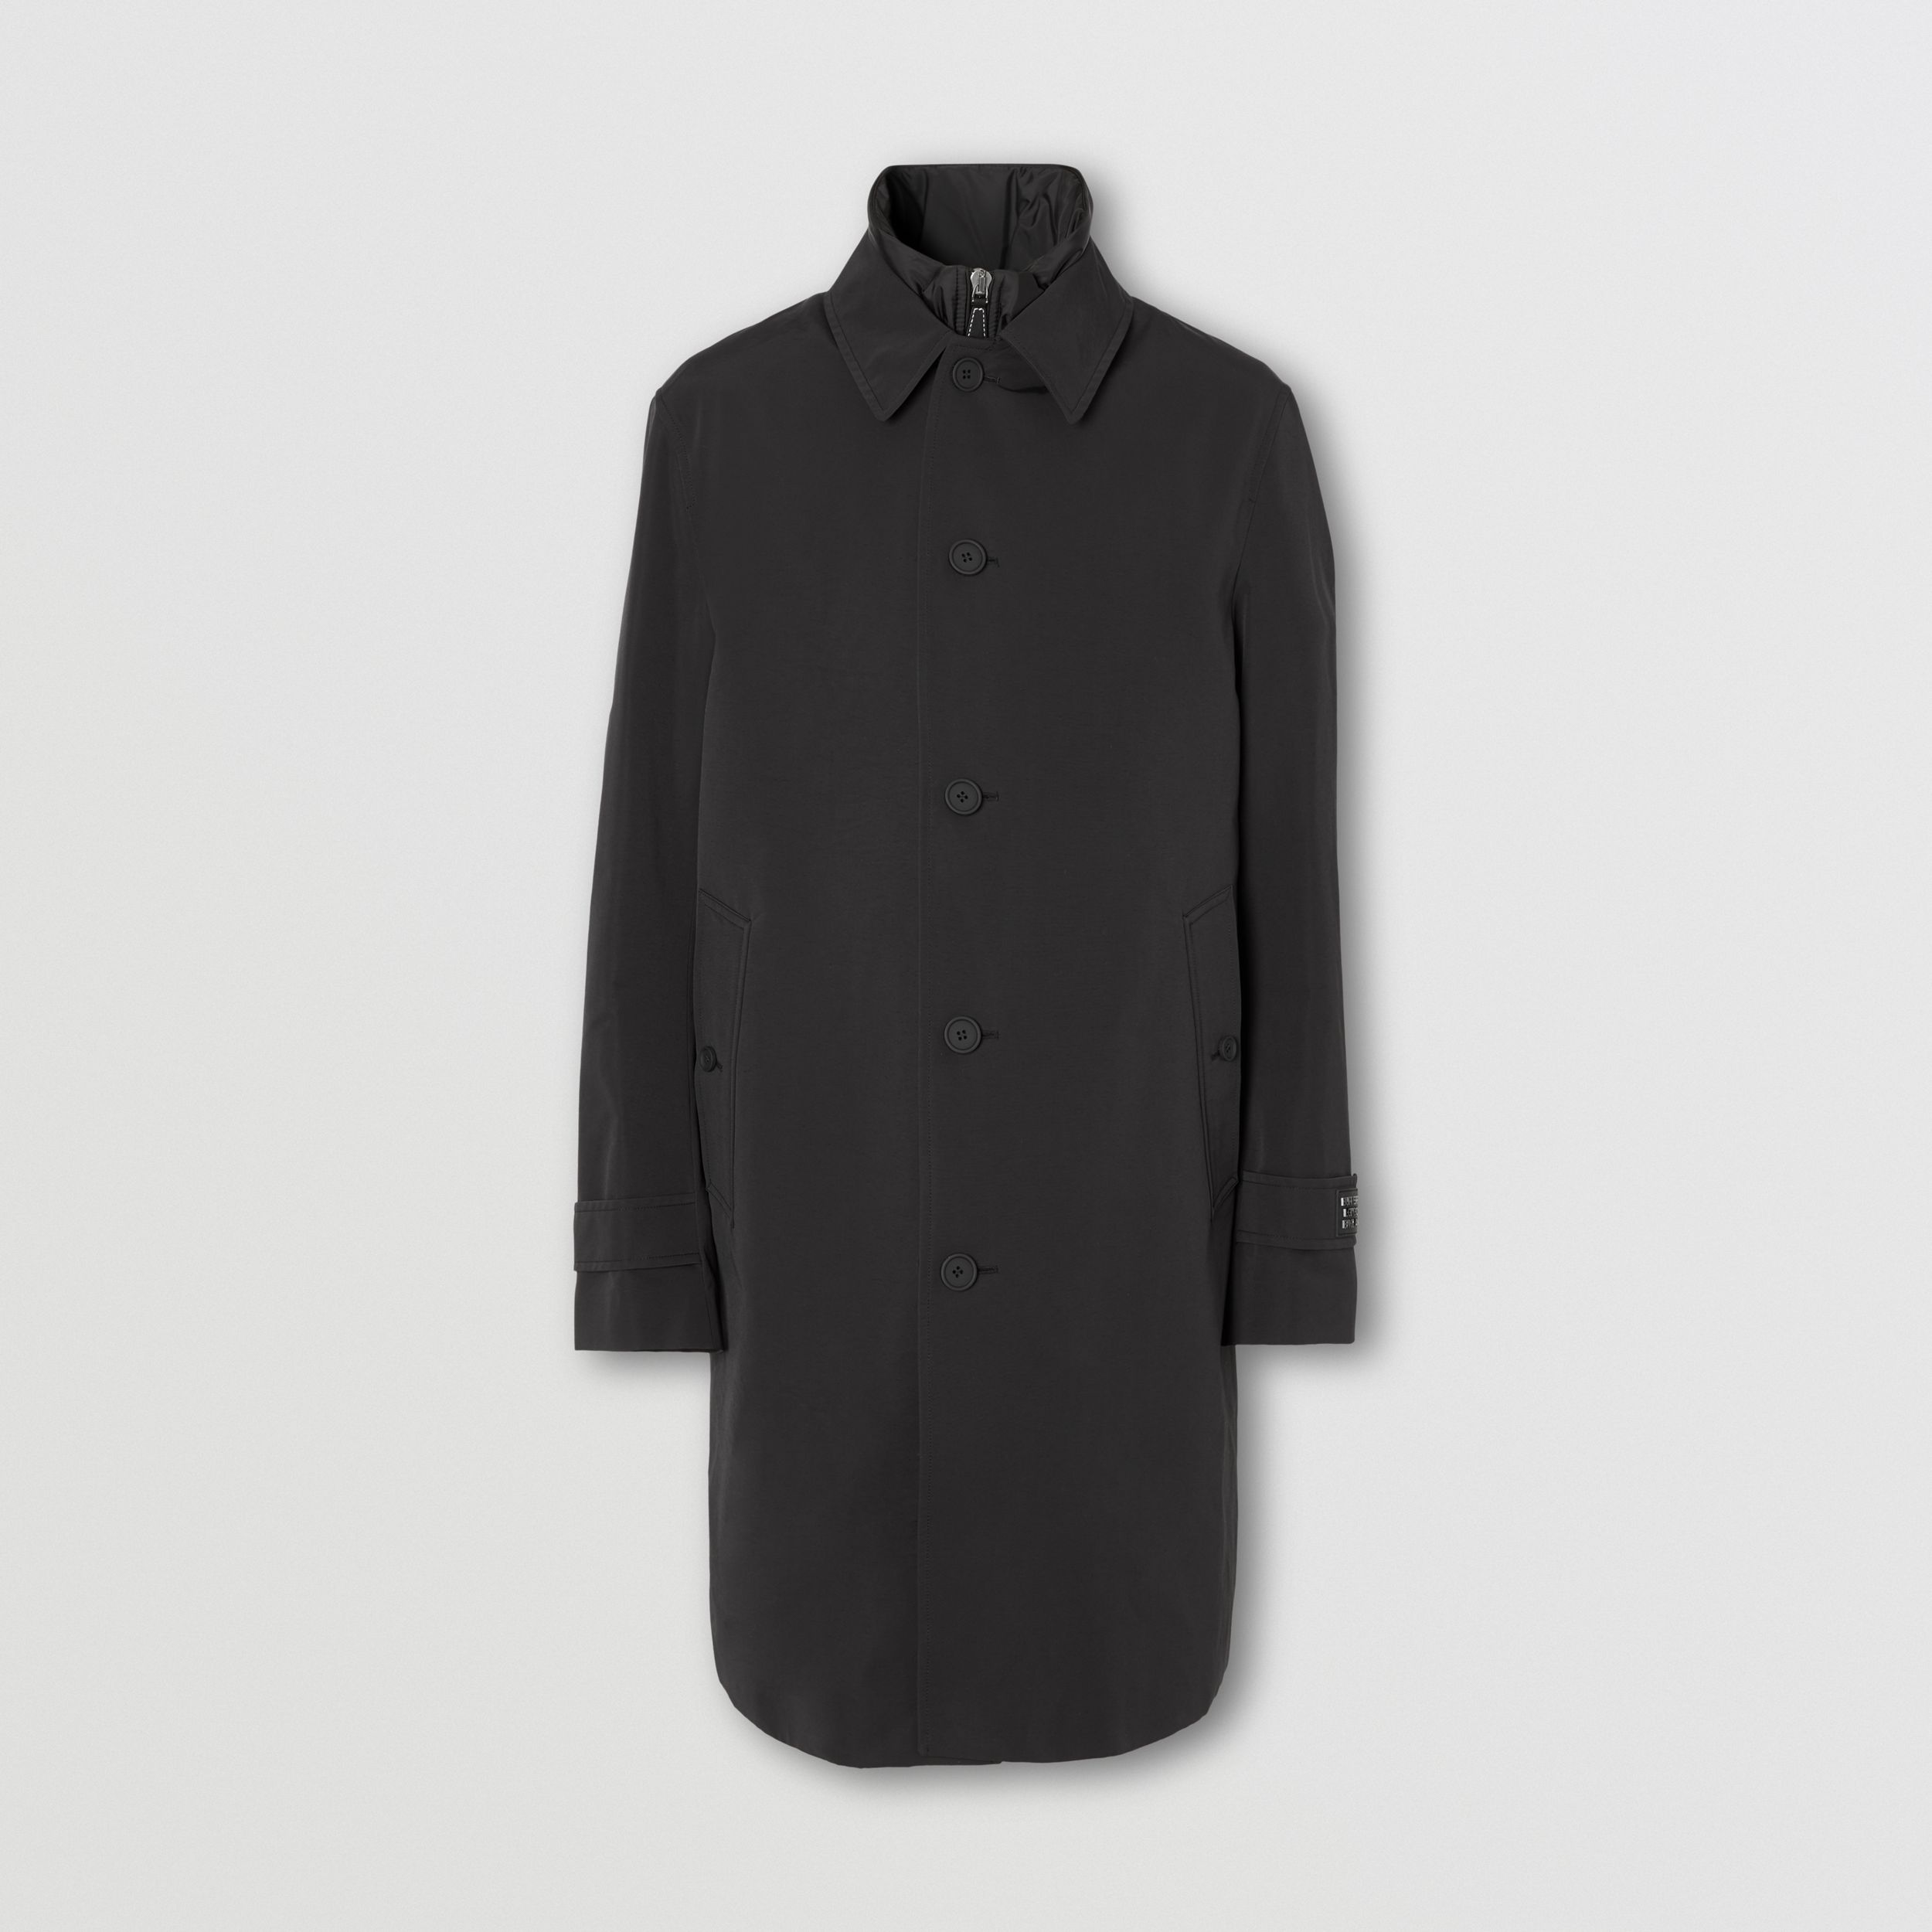 Technical Cotton Car Coat with Detachable Warmer in Black - Men | Burberry - 4